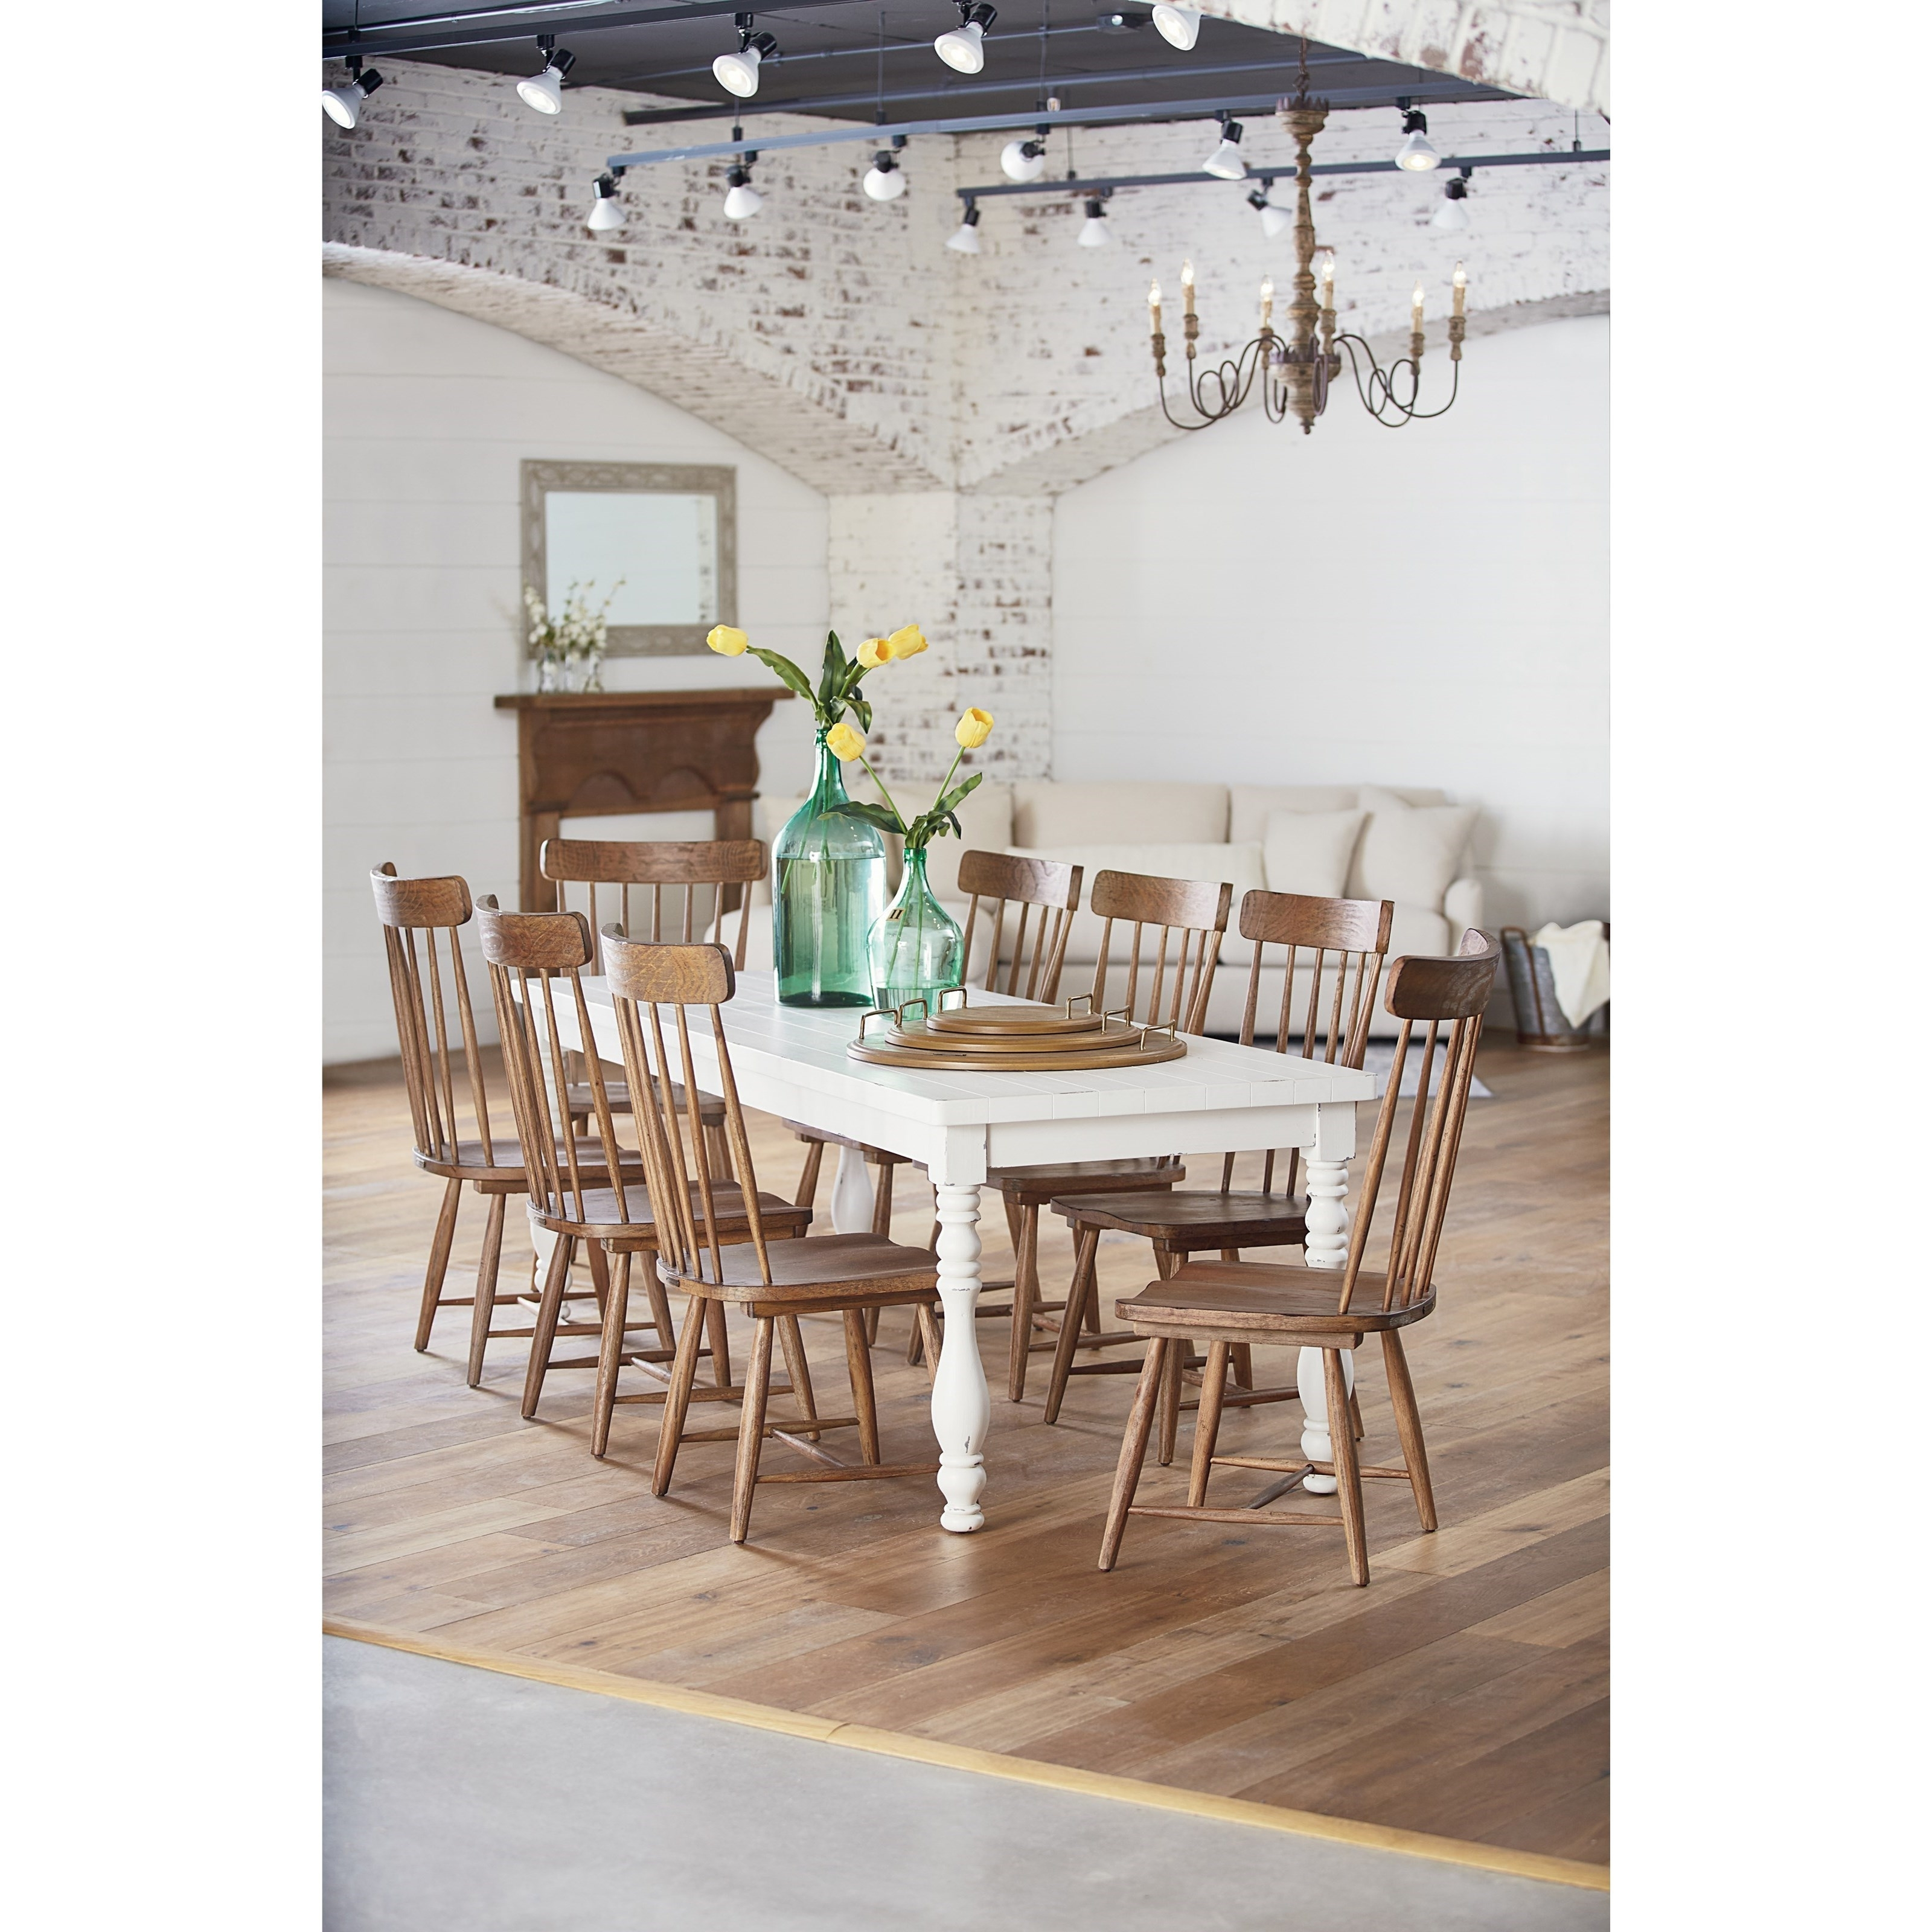 Magnolia Homejoanna Gaines Farmhouse 9 Piece Dining Set With Regarding Most Popular Magnolia Home Double Pedestal Dining Tables (View 16 of 25)